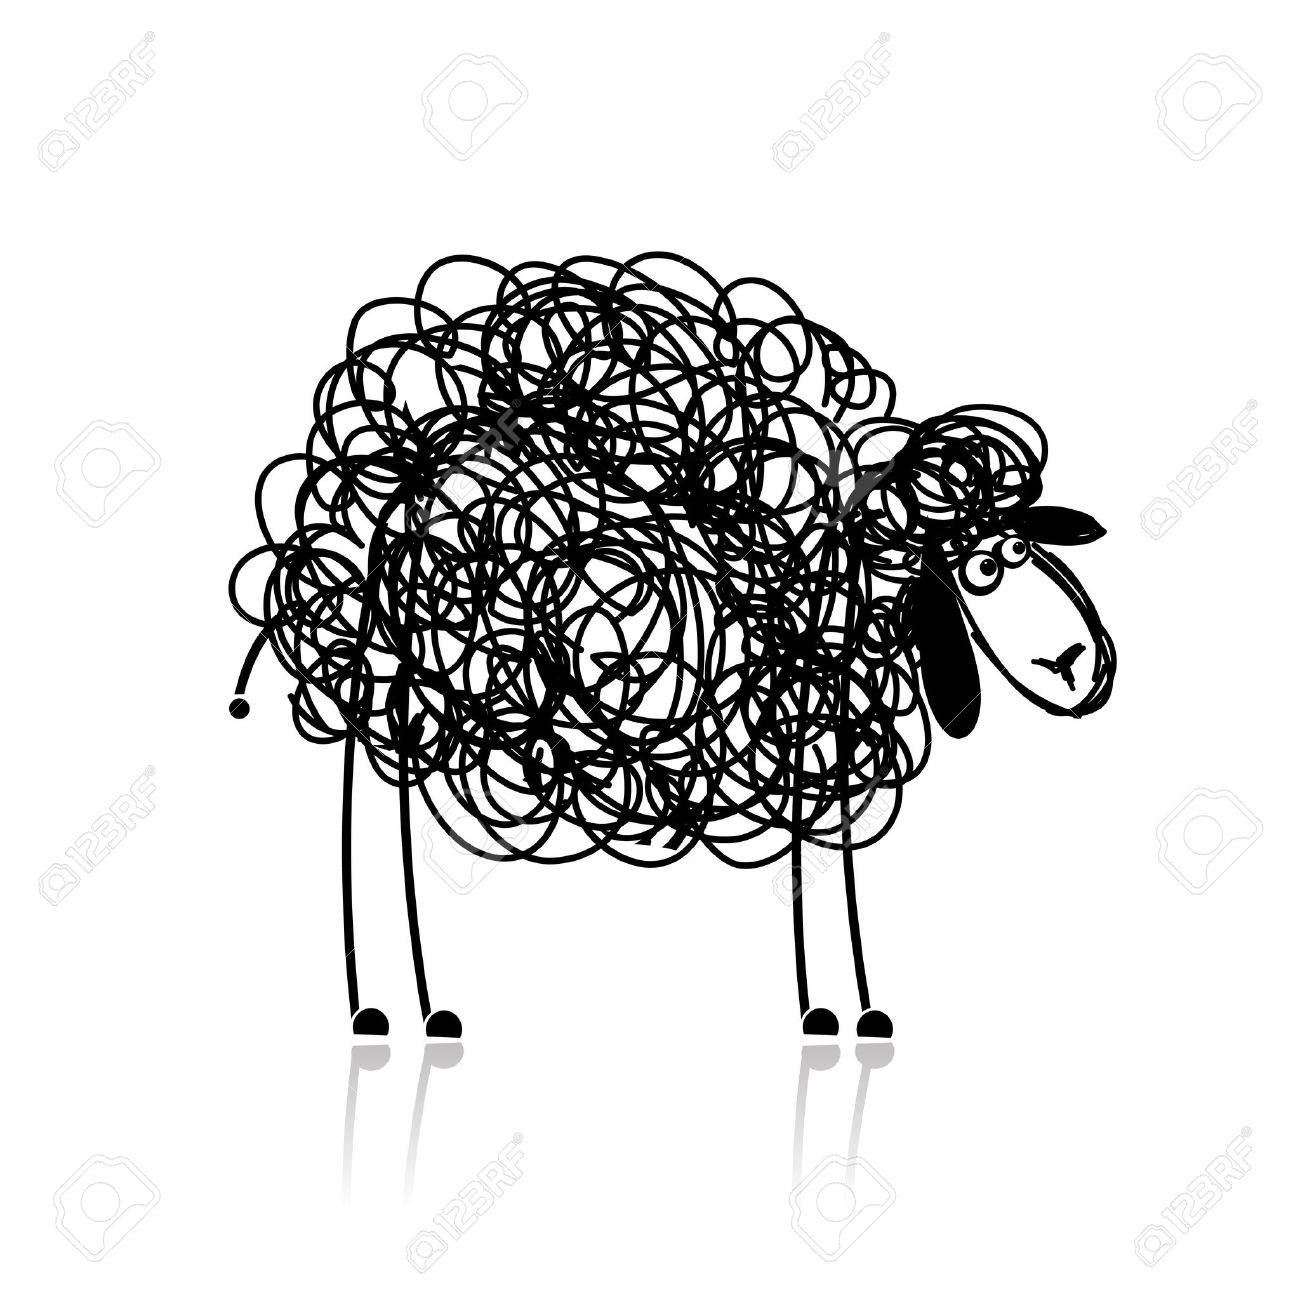 funny black sheep sketch for your design stock vector 15478174